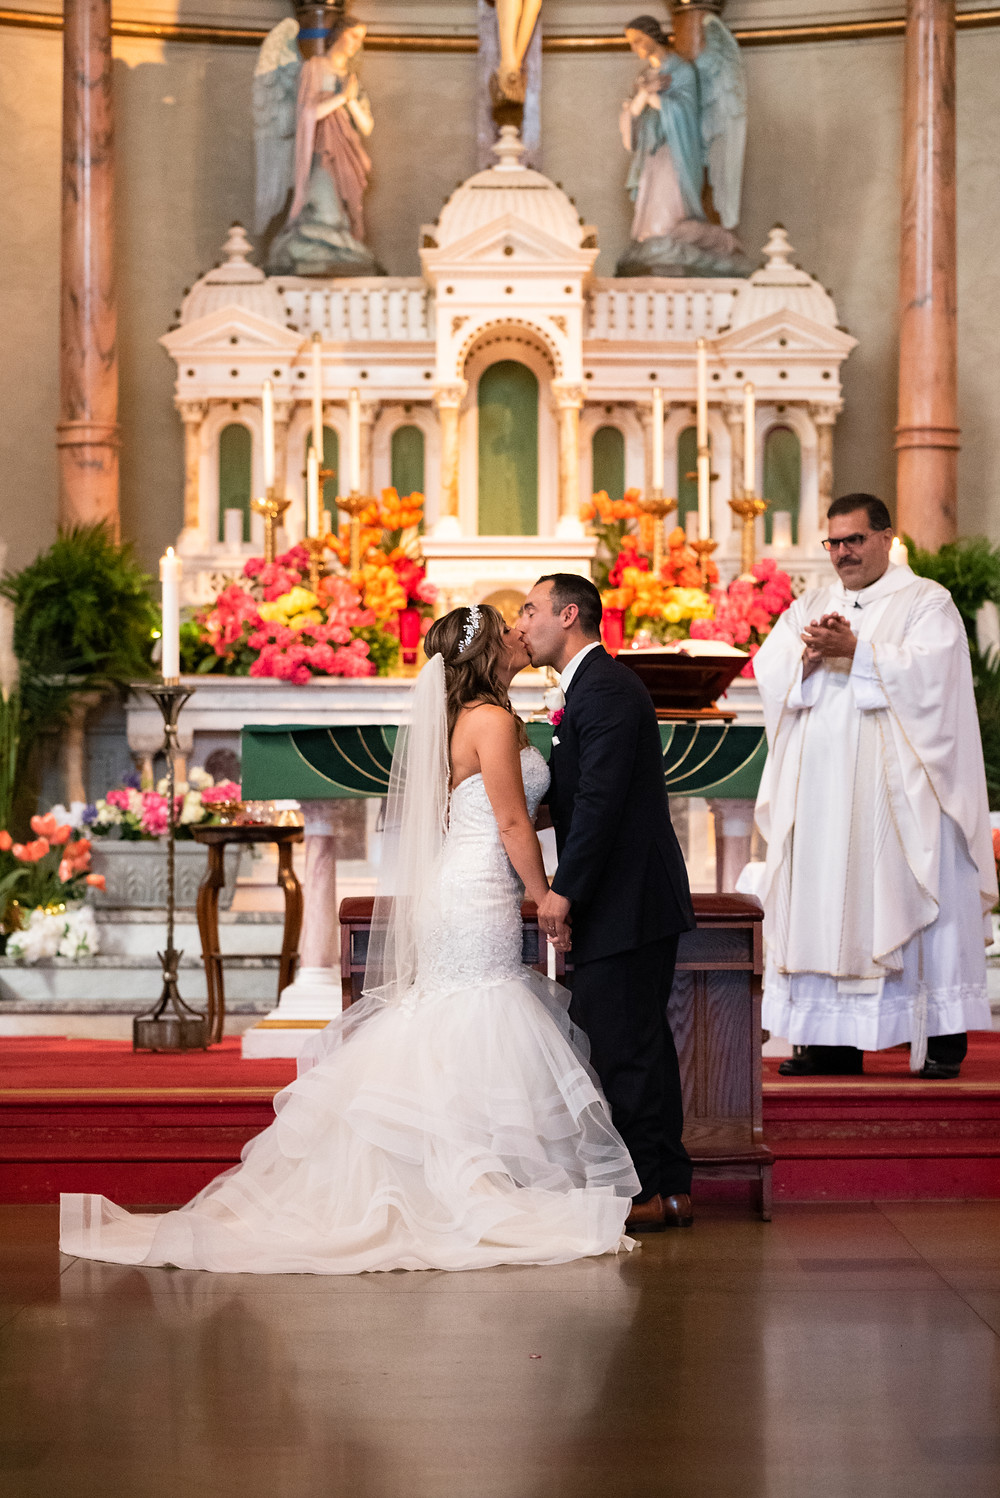 First kiss as husband and wife at St. Stanislaus Kostka in Pittsburgh